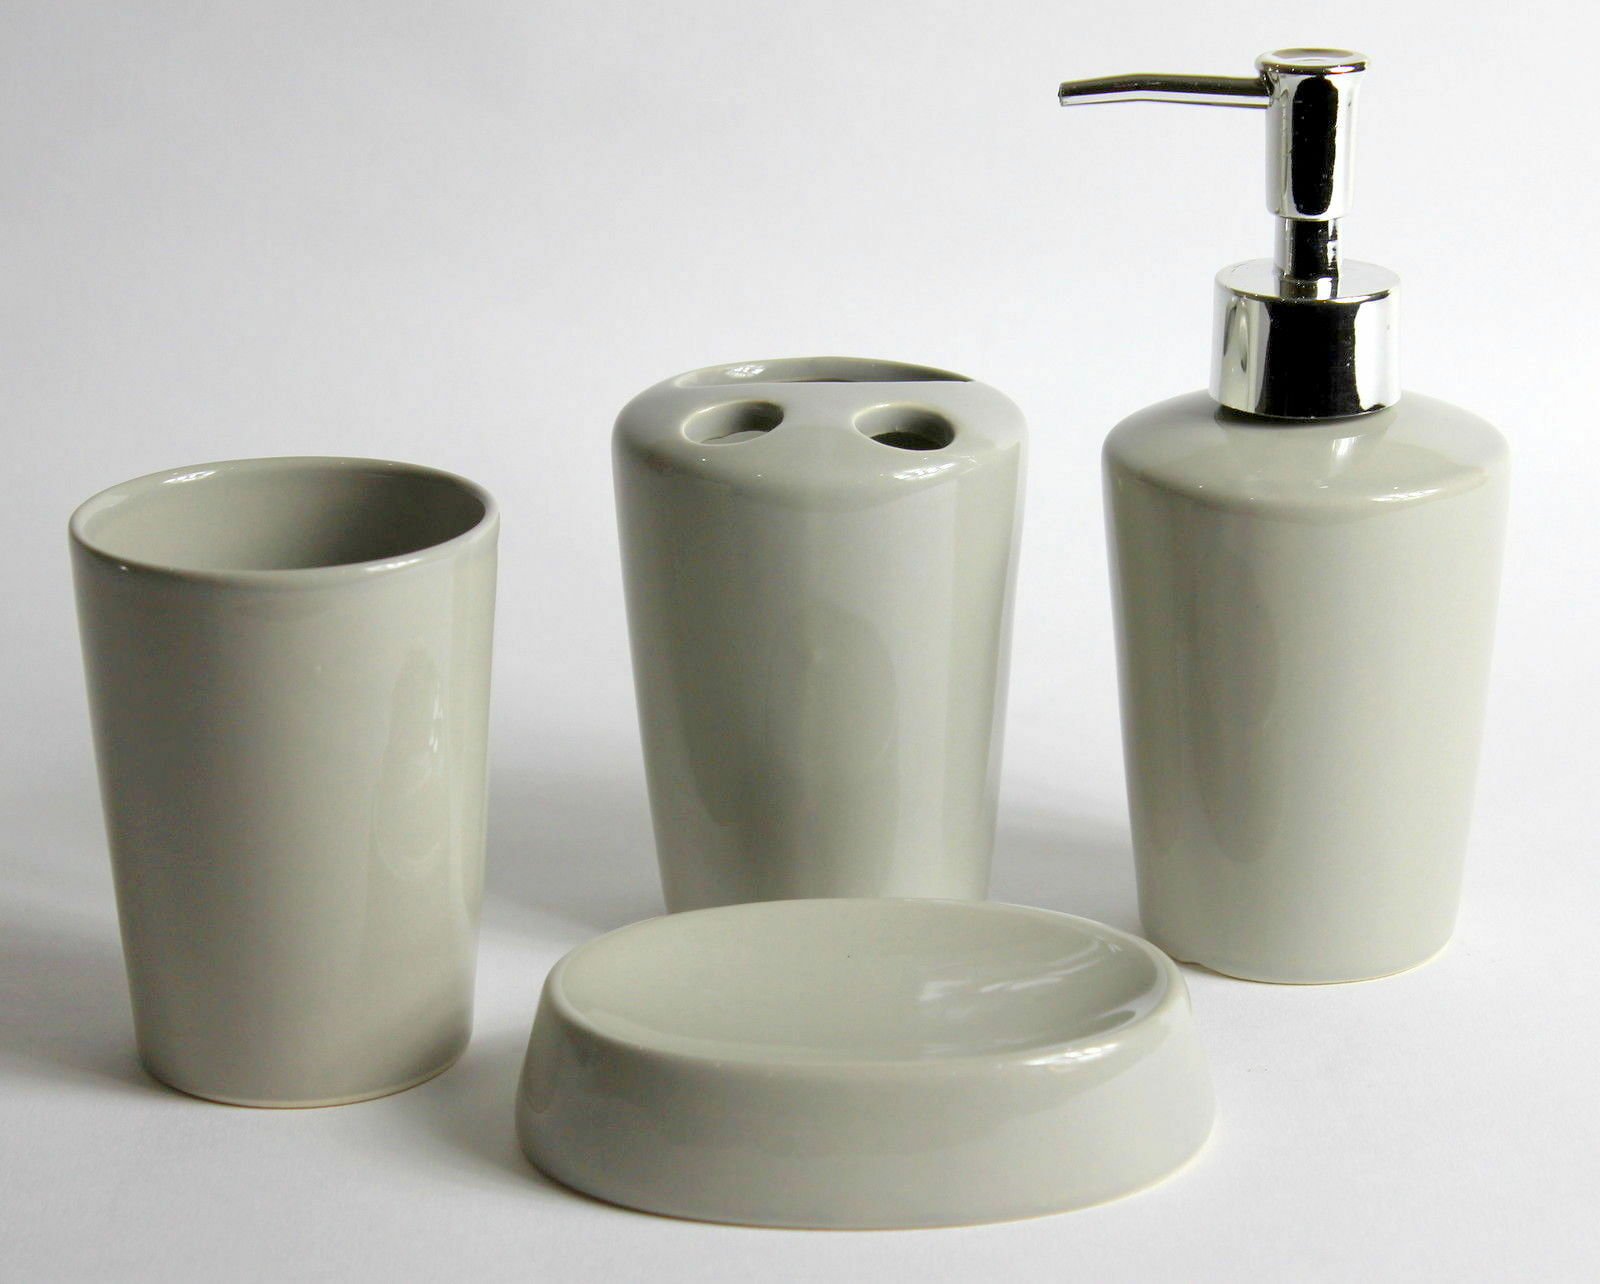 4pc tonal grey ceramic round bathroom accessory set soap dish dispenser tumbler - Bathroom soap dish sets ...